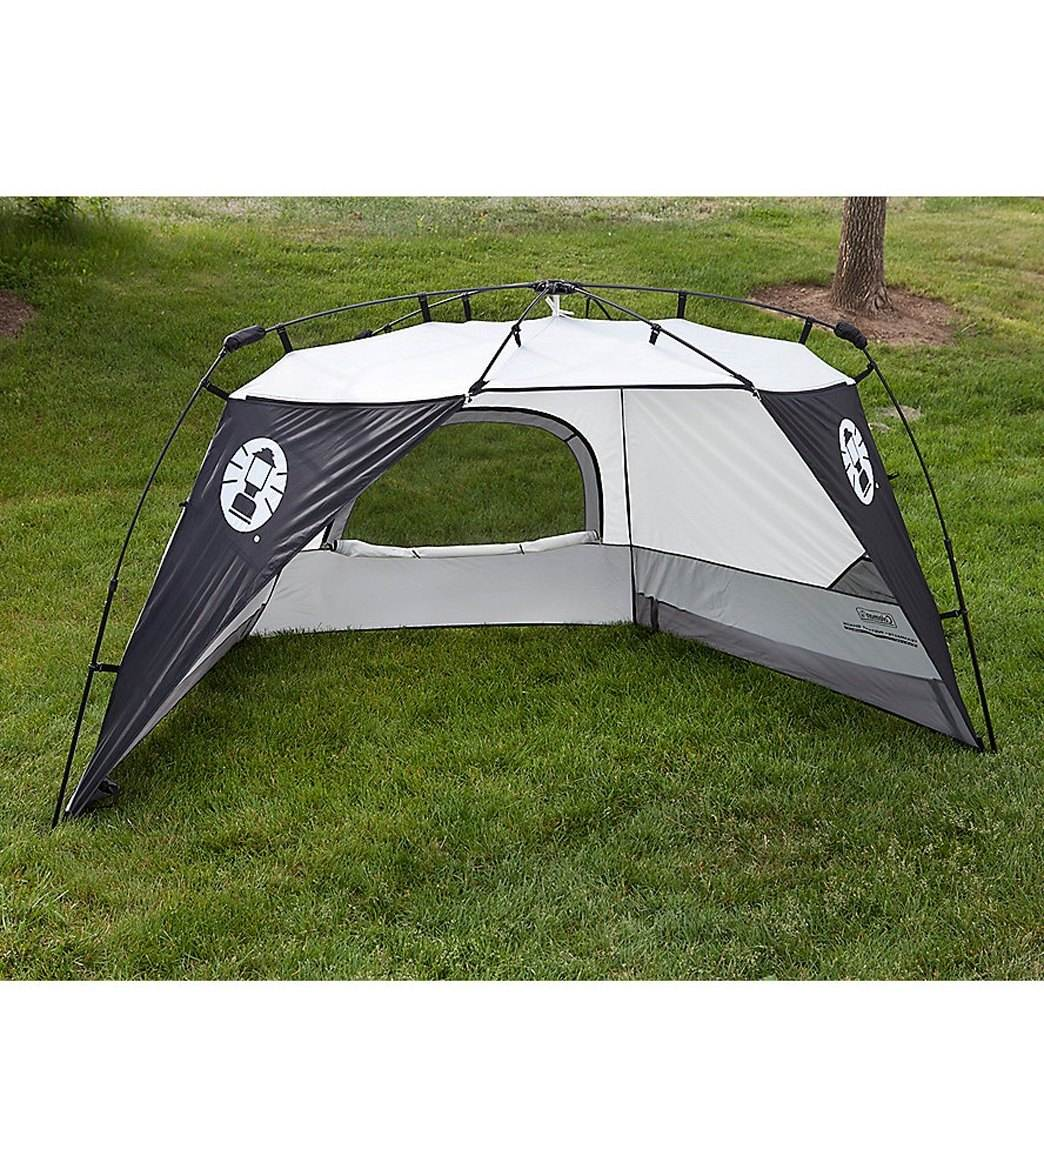 Coleman Instant Shade Teammate Shelter Beach Tent at SwimOutlet.com - Free Shipping  sc 1 st  SwimOutlet.com : tents for beach shade - memphite.com